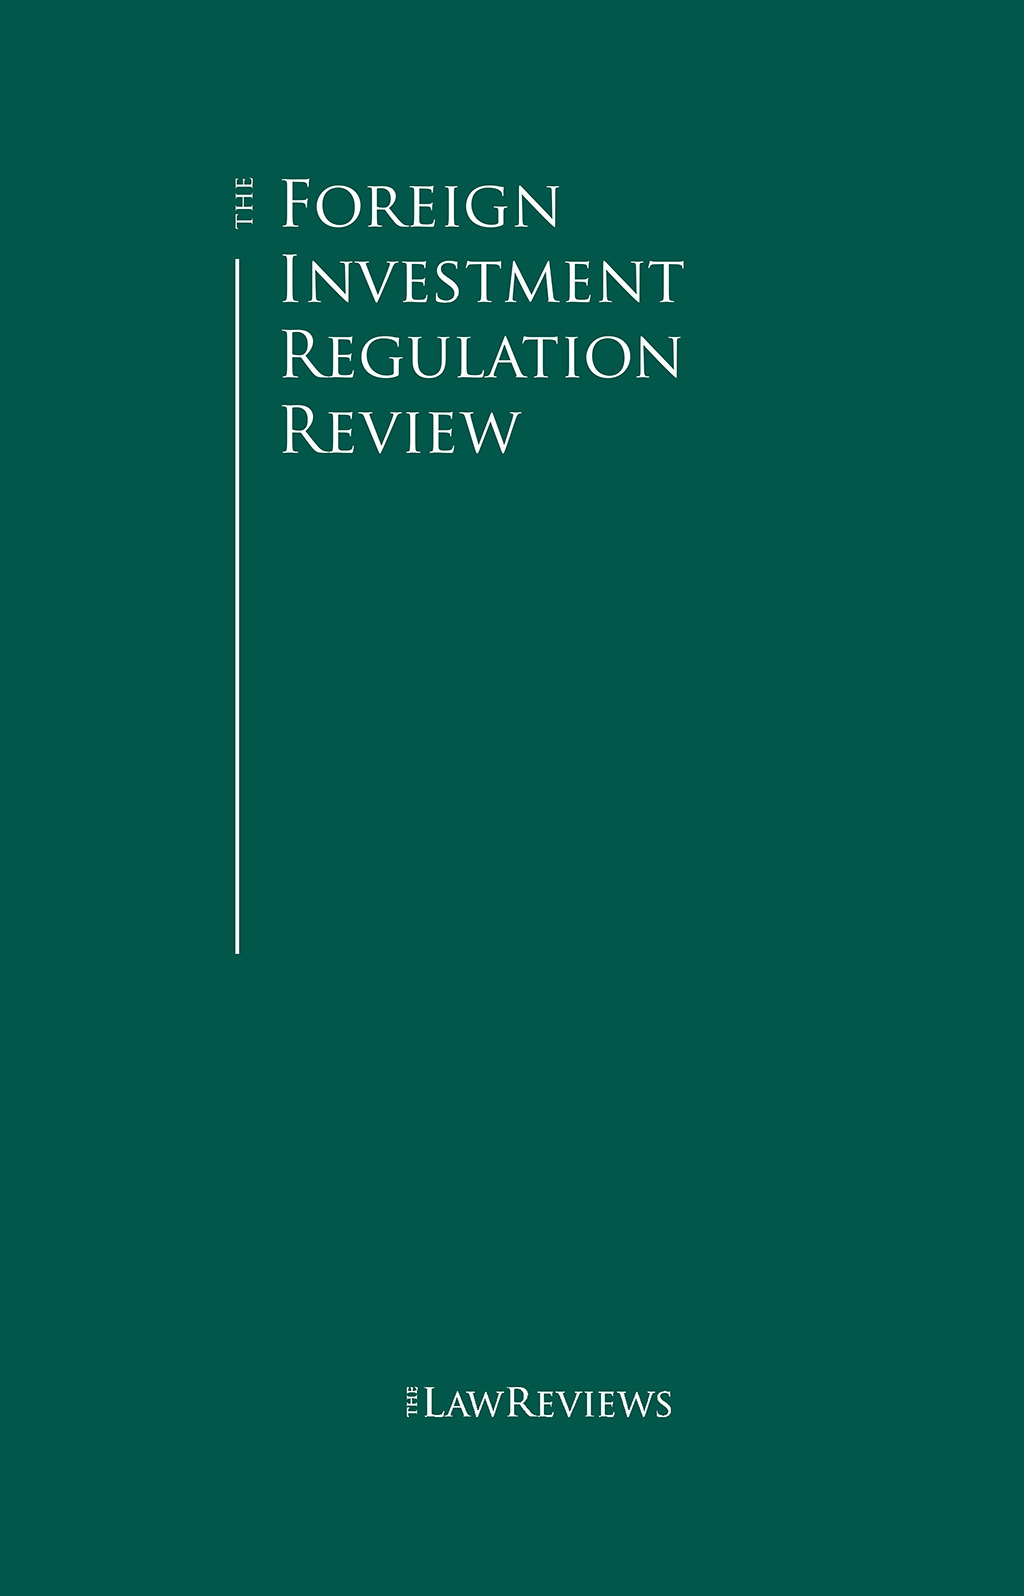 The Foreign Investment Regulation Review